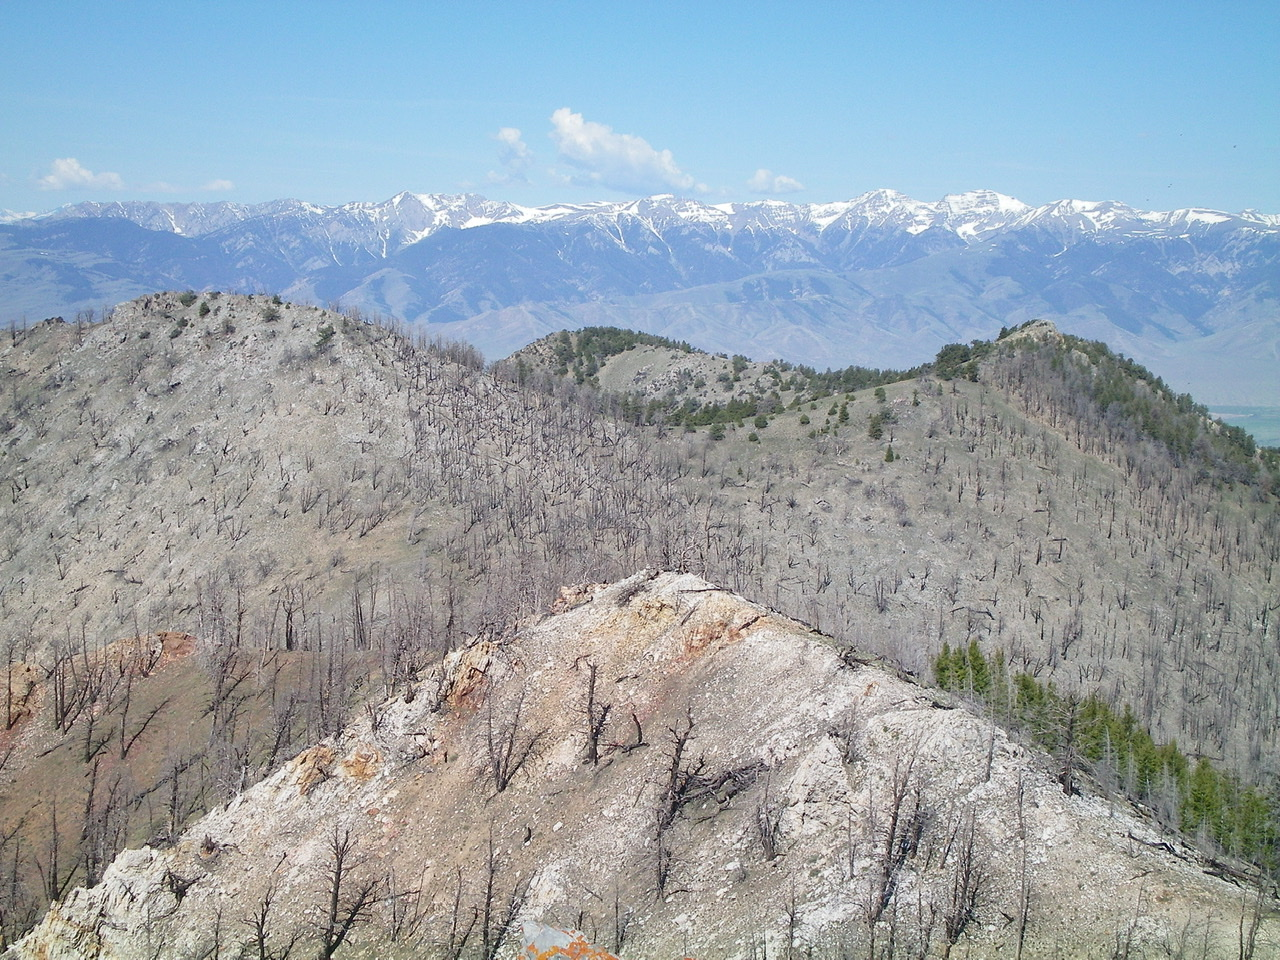 Burn-scarred Peak 9044 (the hump left of center) as viewed from Peak 9151 to the east. Livingston Douglas Photo